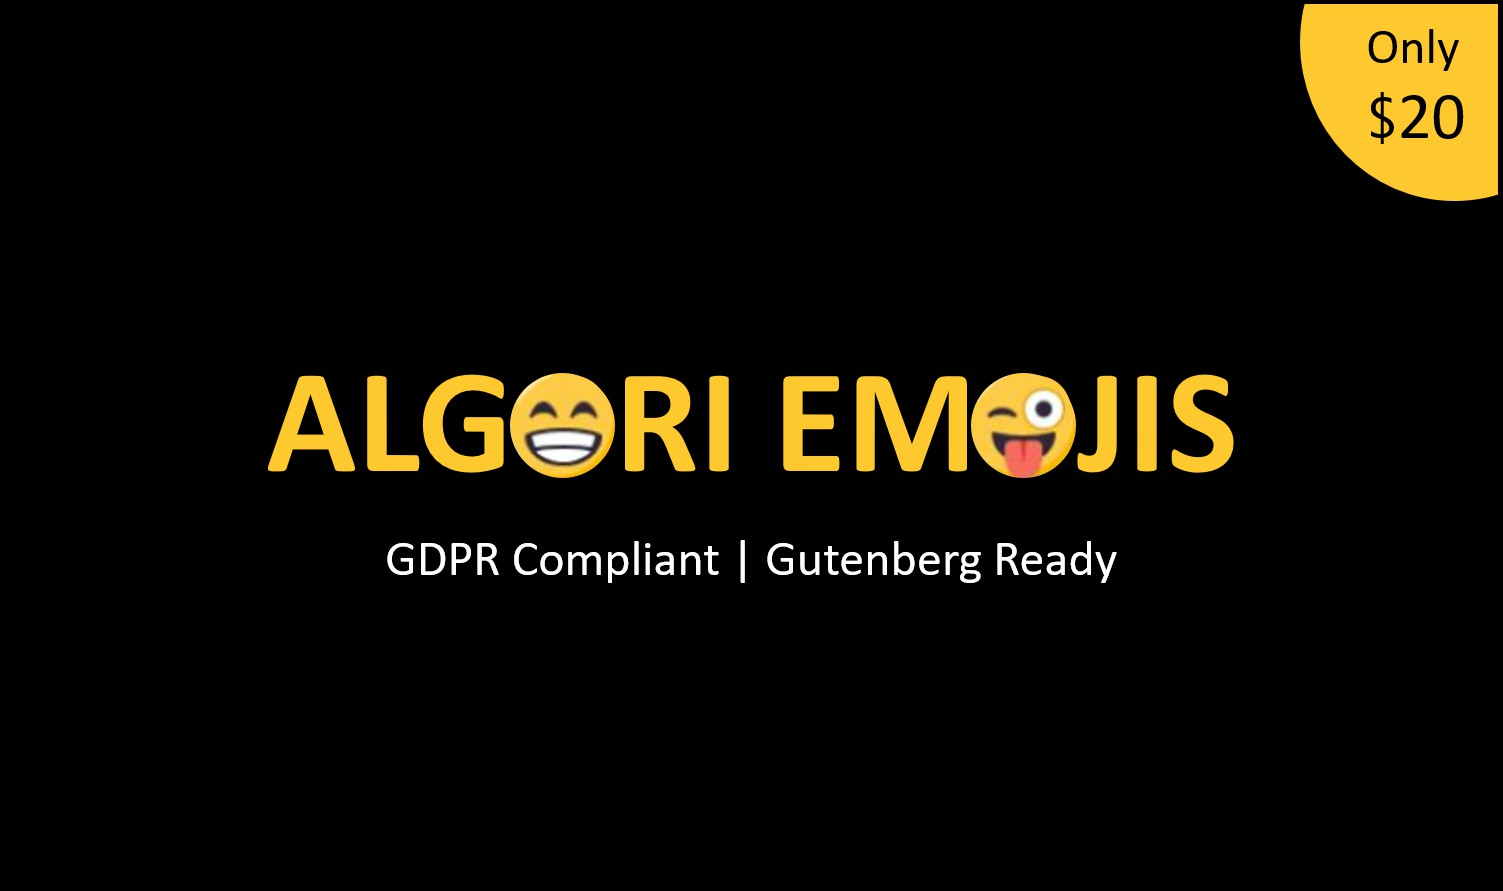 Algori Emojis WordPress Gutenberg Block Plugin